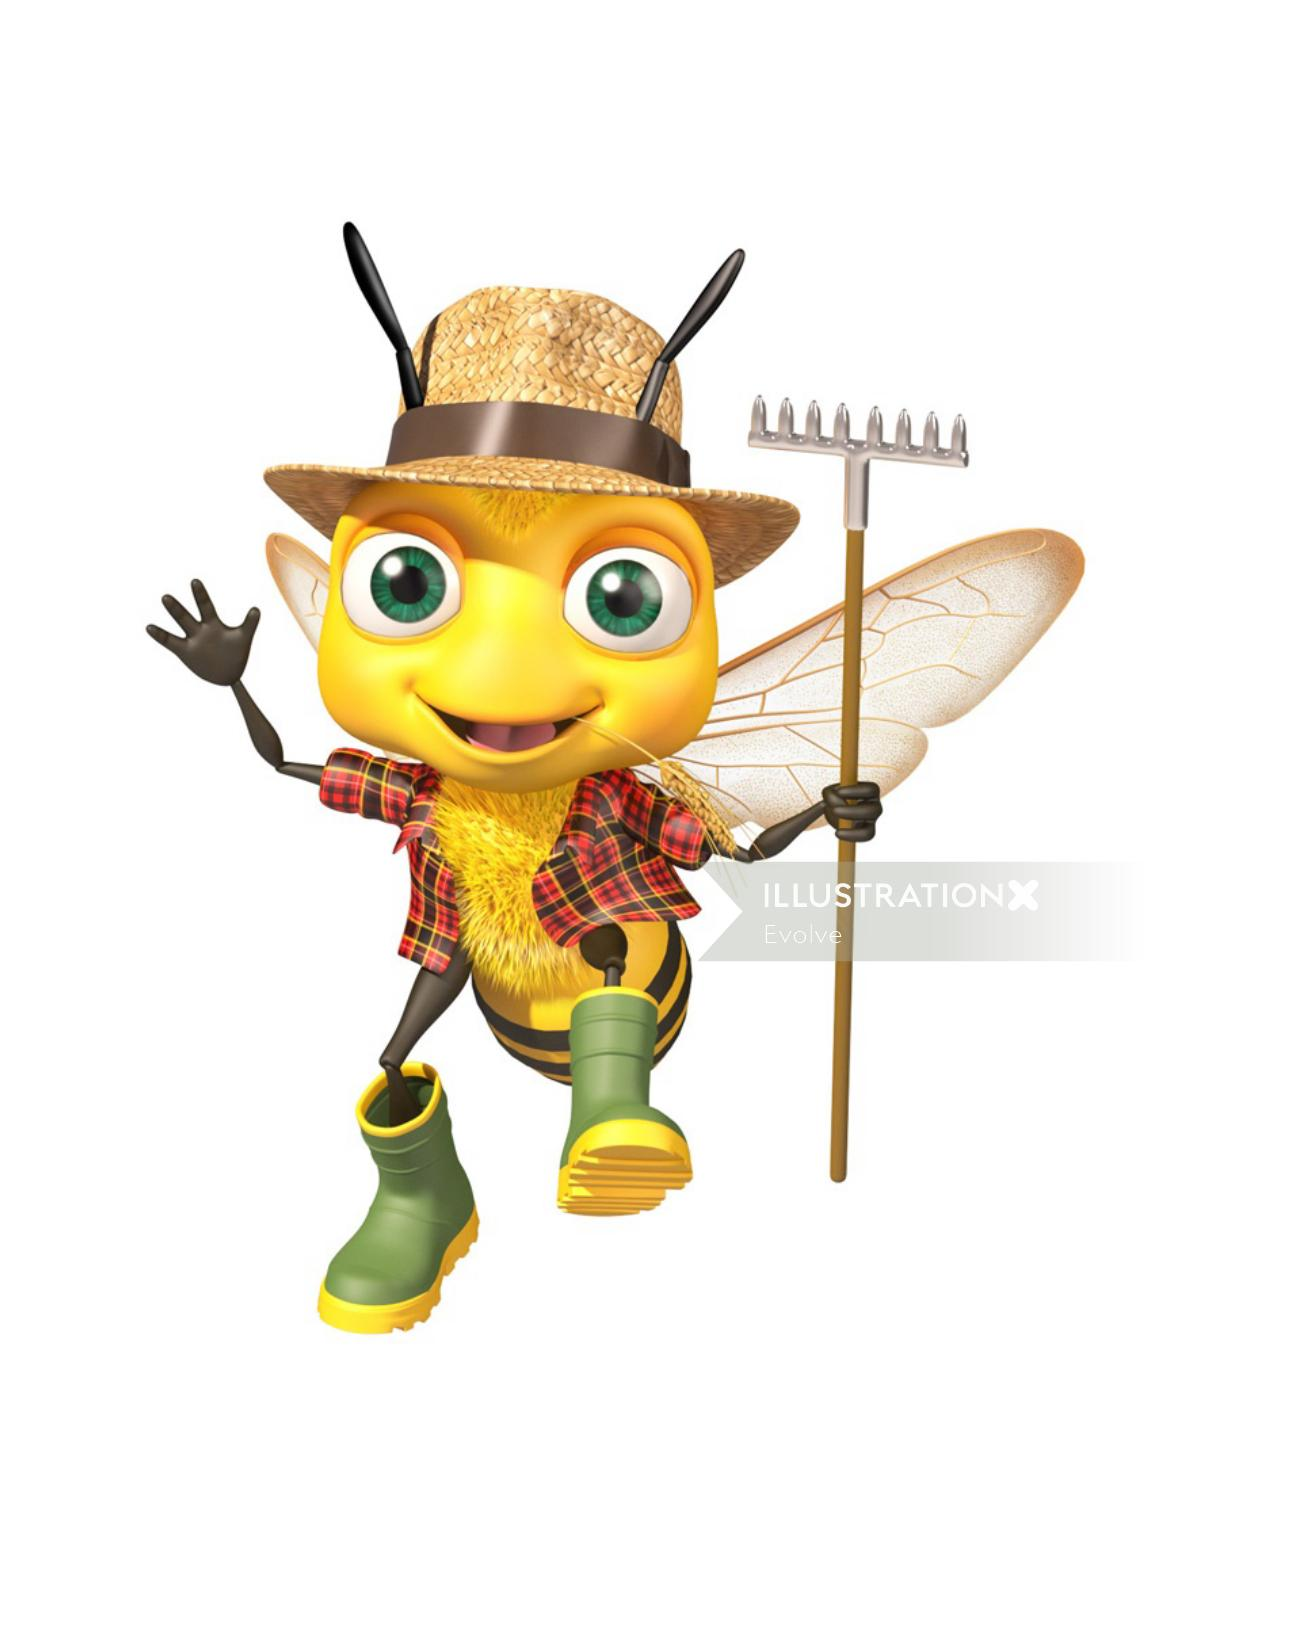 Cartoon illustration of Bee character for Honey's World water